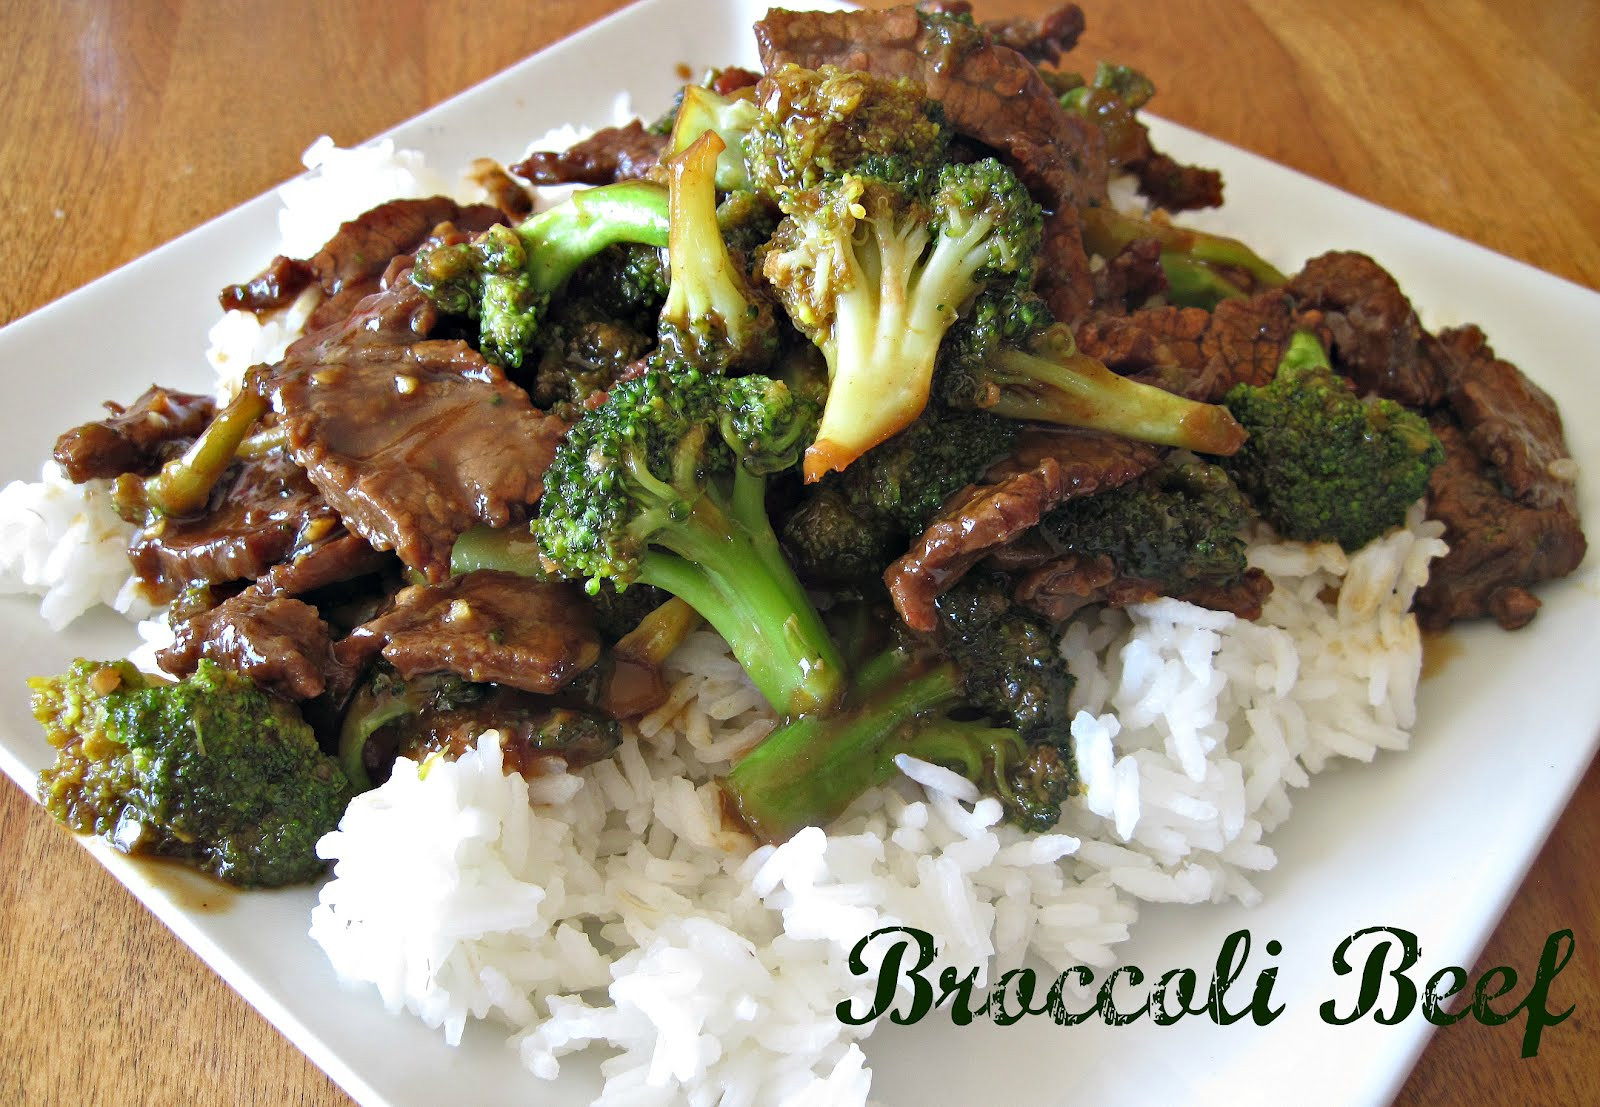 Best Beef And Broccoli Recipe  Aubrey s Recipes The Best Broccoli Beef